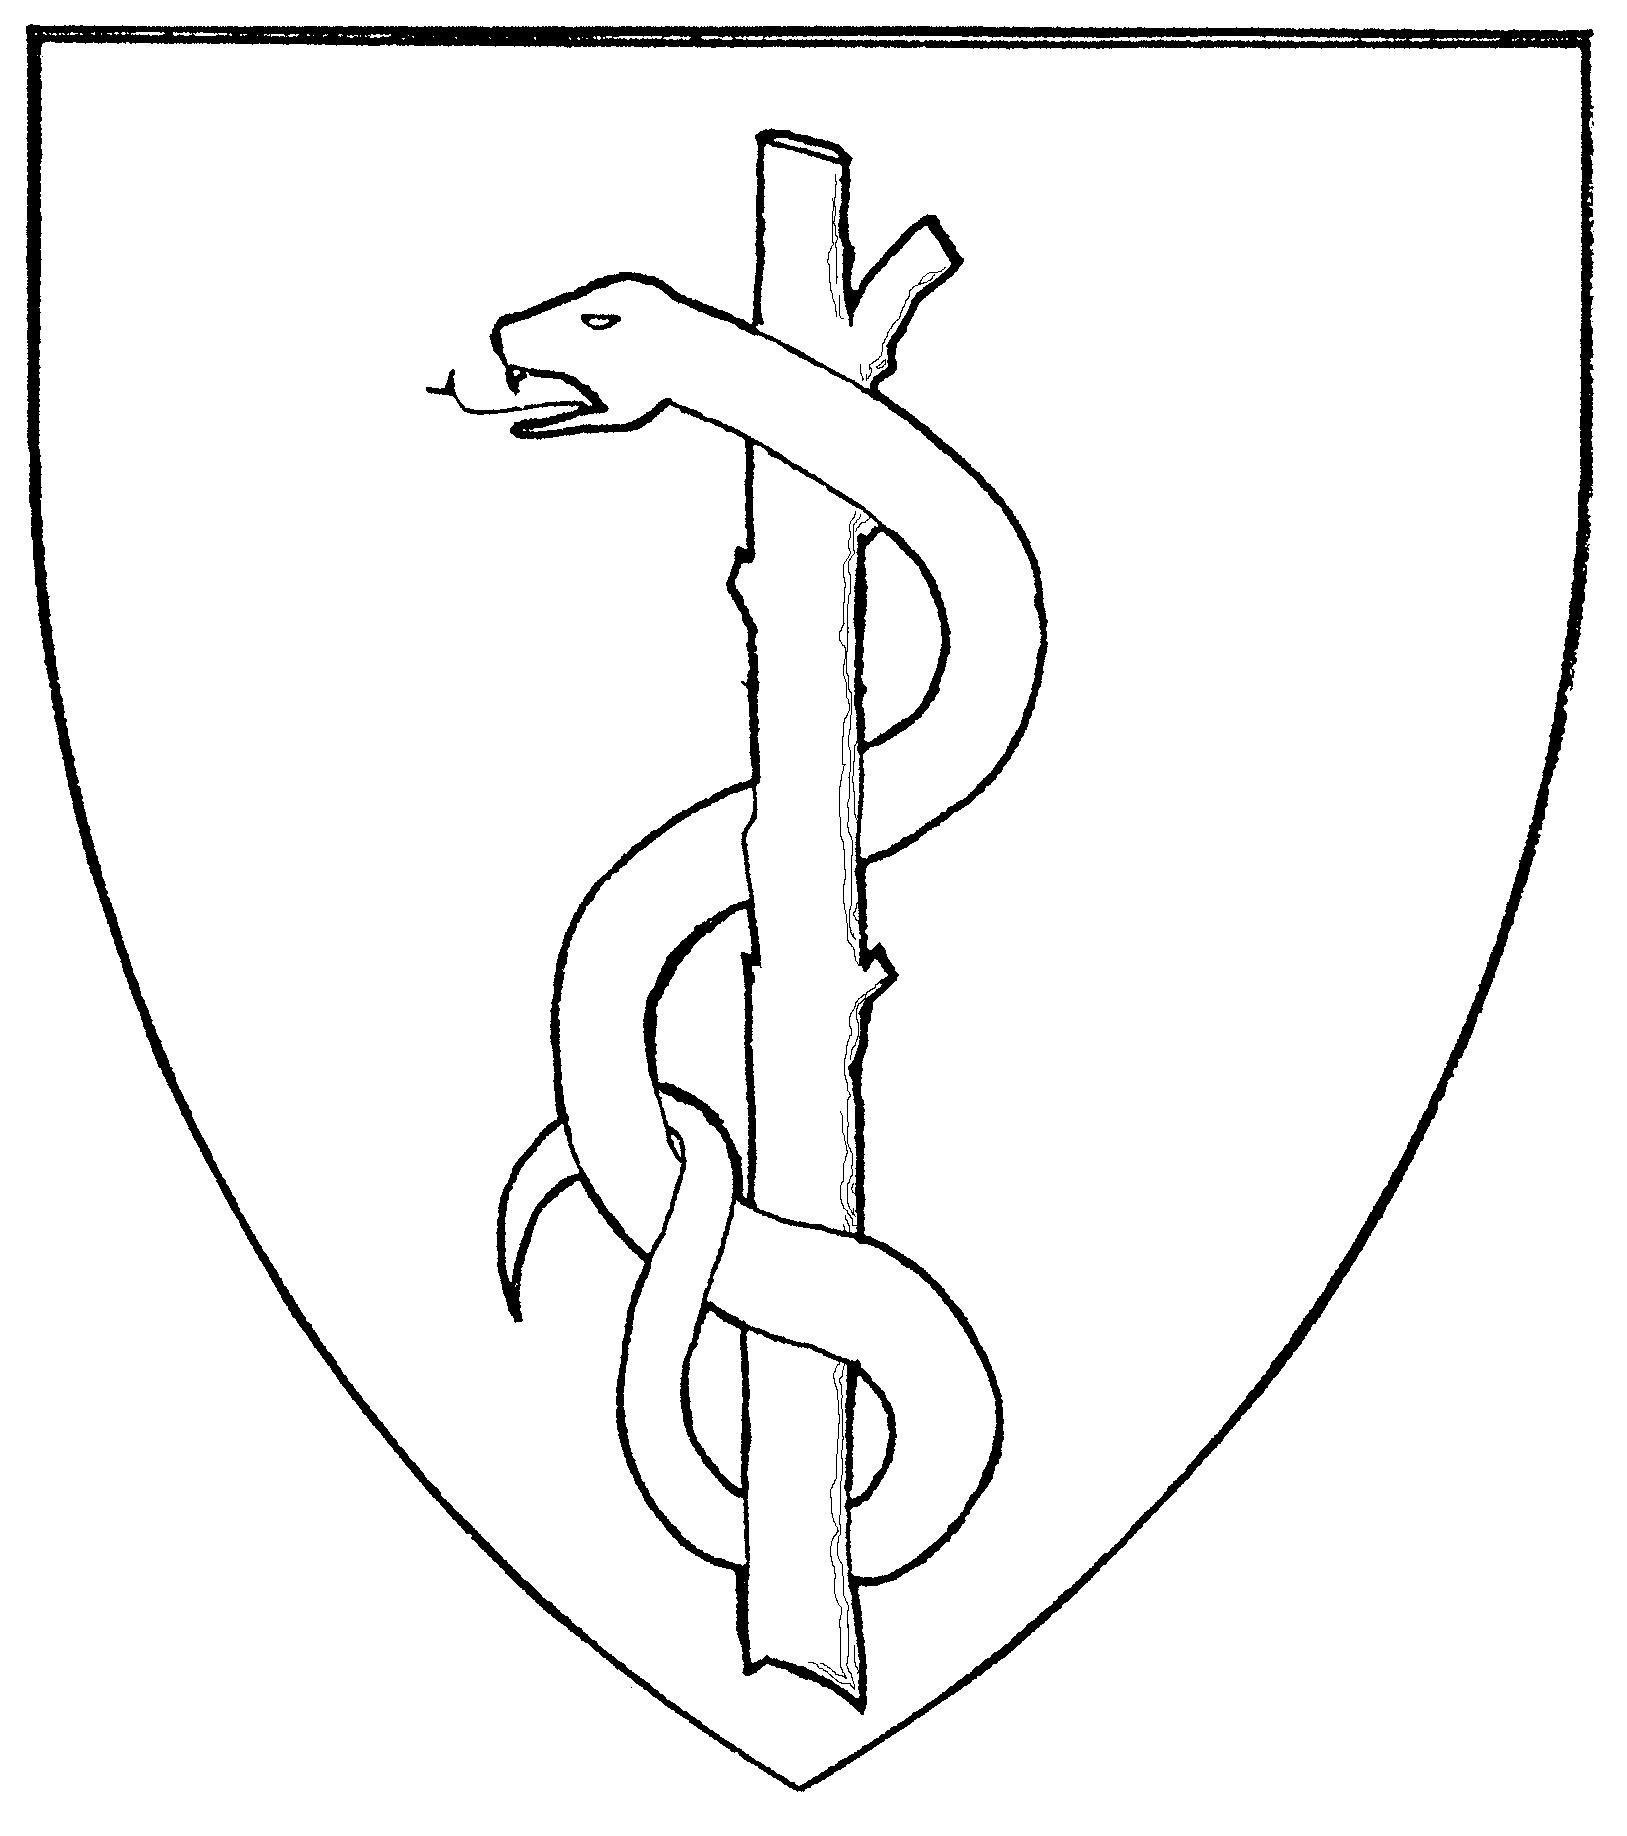 asklepios caduceus of hermes essay The rod of asclepius vs the caduceus the rod of asclepius consists of a single serpent wound around a staff (as pictured above) a similar symbol, the caduceus, was the symbol of the greek god hermes.